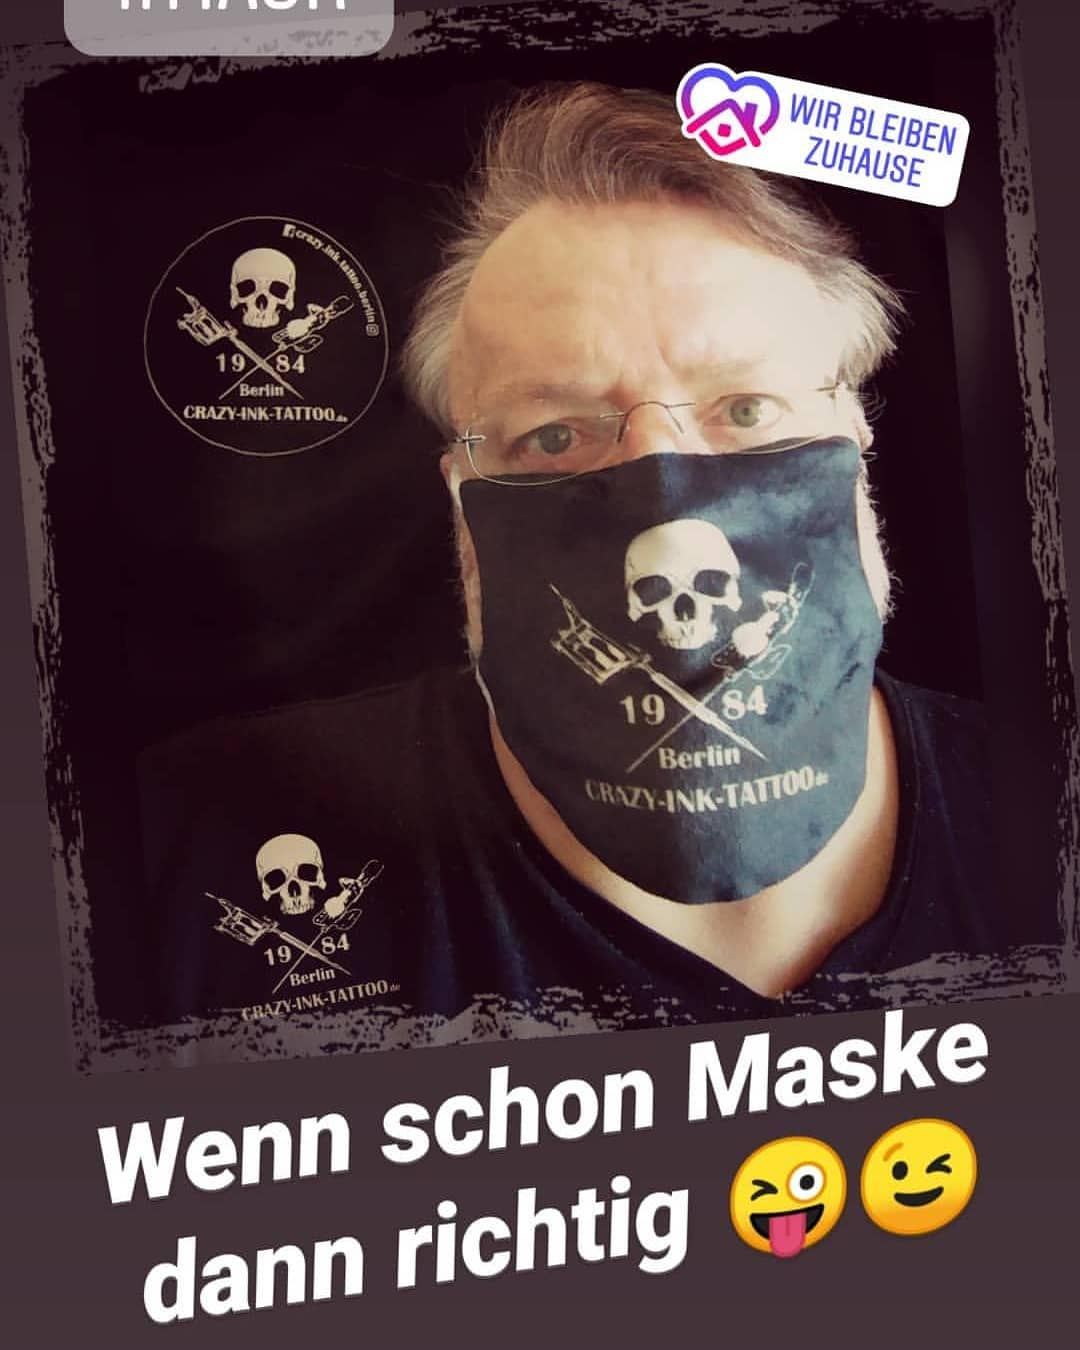 Corona Masken Mit Crazy Ink Tattoo Logo